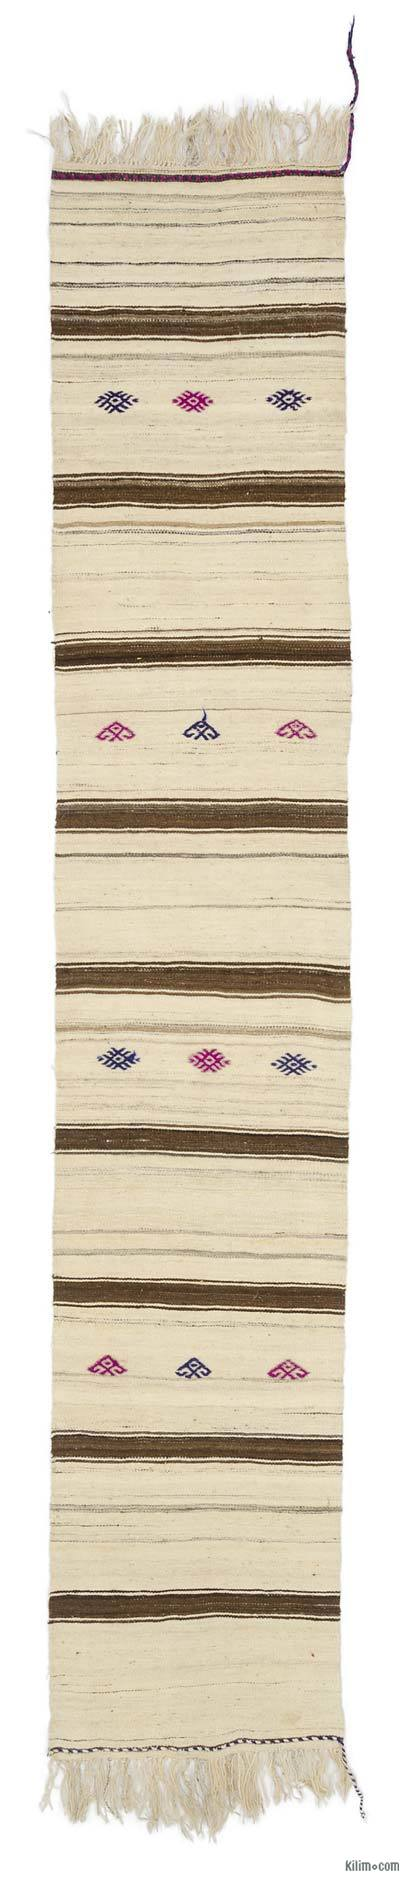 "Vintage Turkish Kilim Runner - 2'3"" x 12'1"" (27 in. x 145 in.)"